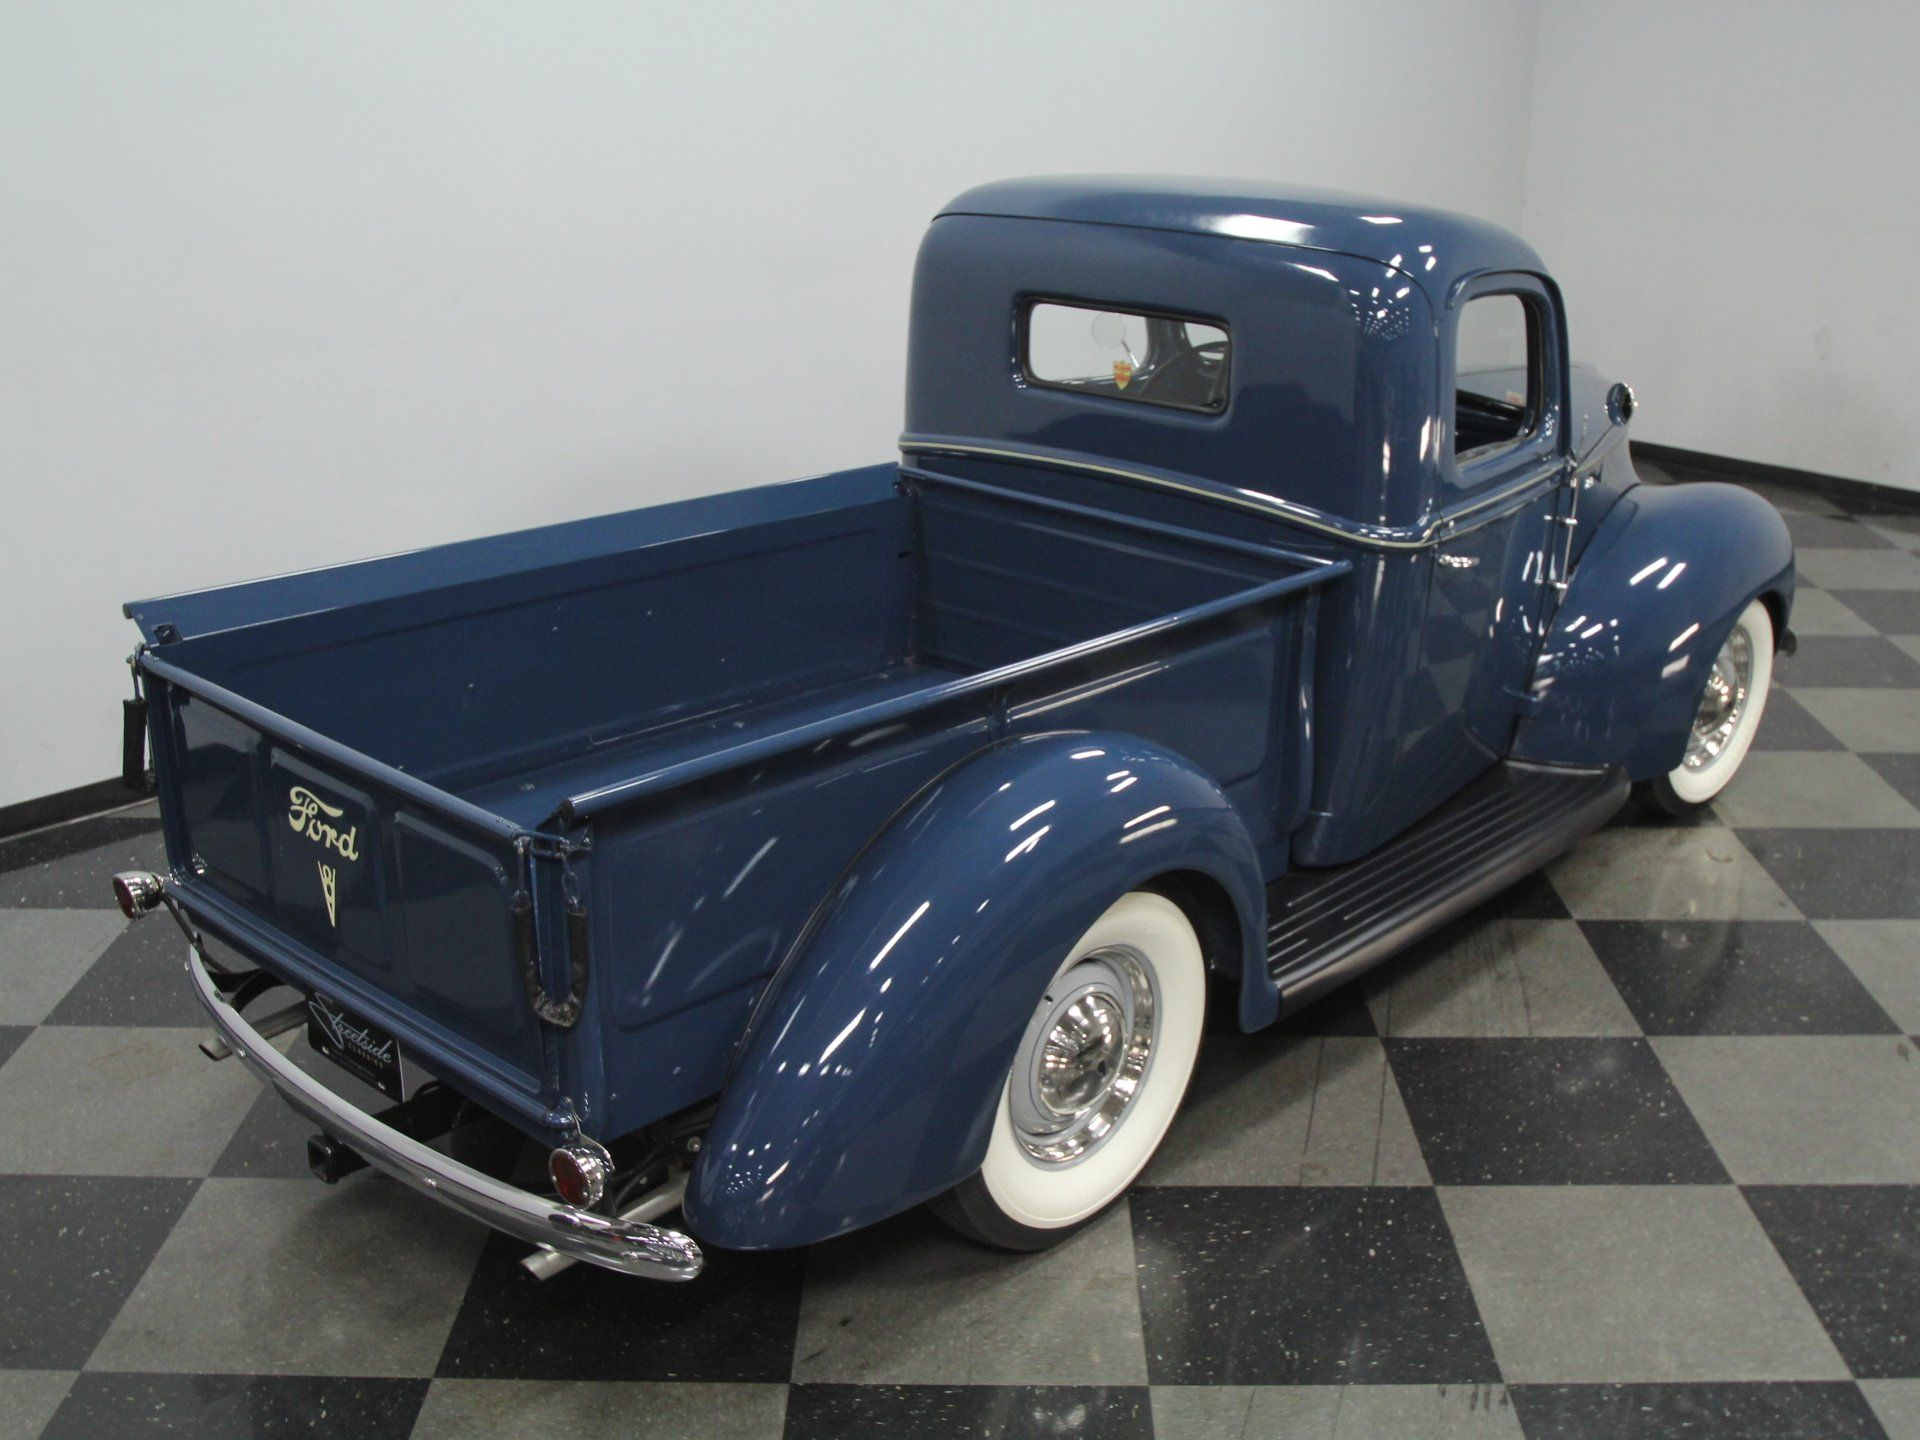 1940 Ford Pickup Streetside Classics The Nation S Trusted Classic Car Consignment Dealer In 2020 Ford Pickup 1940 Ford Classic Cars Trucks